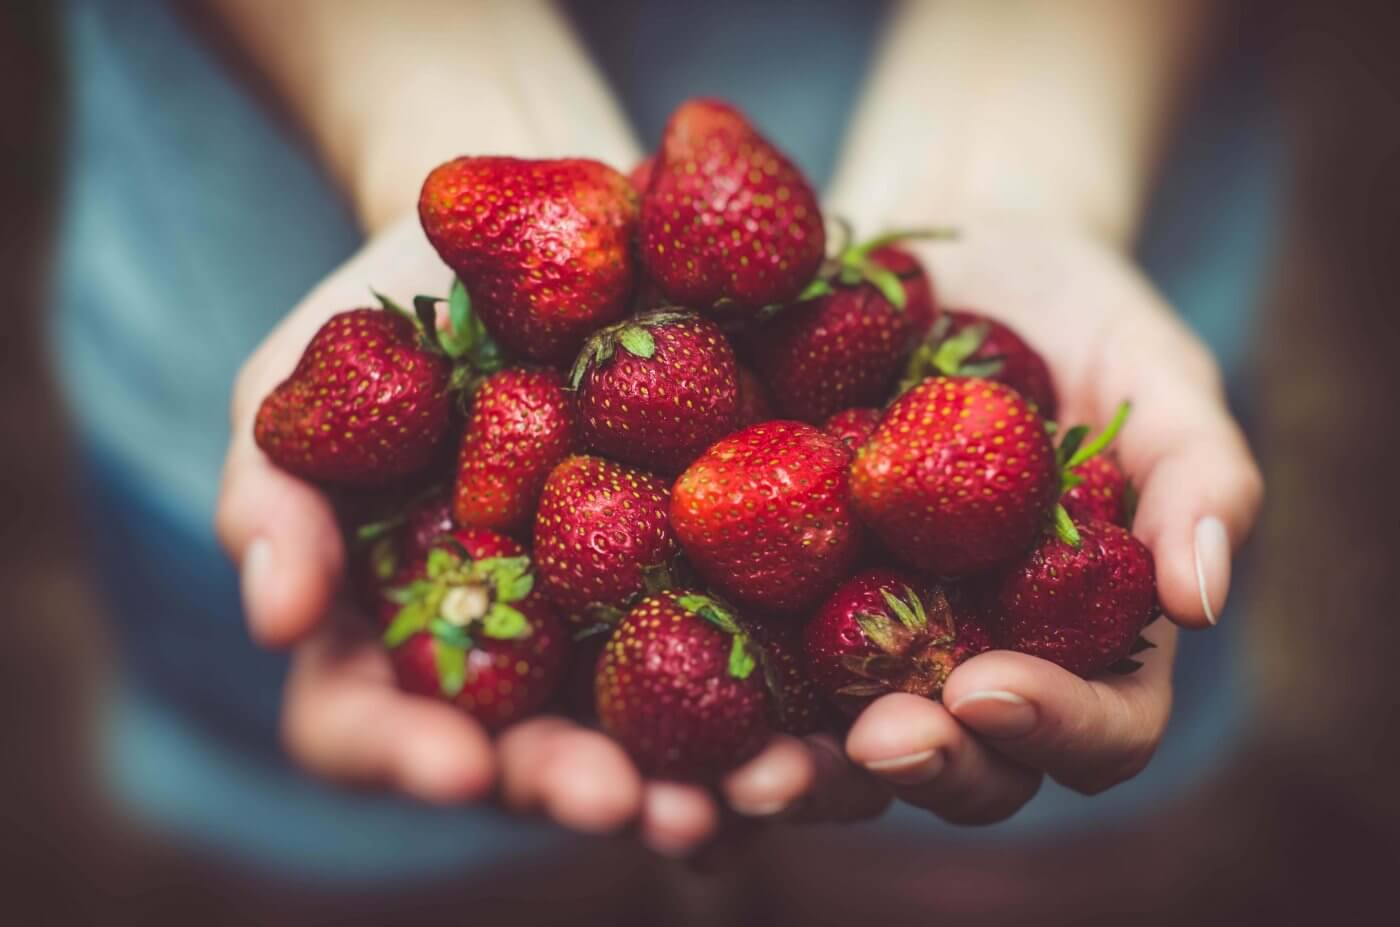 Strawberries | The Mustcard